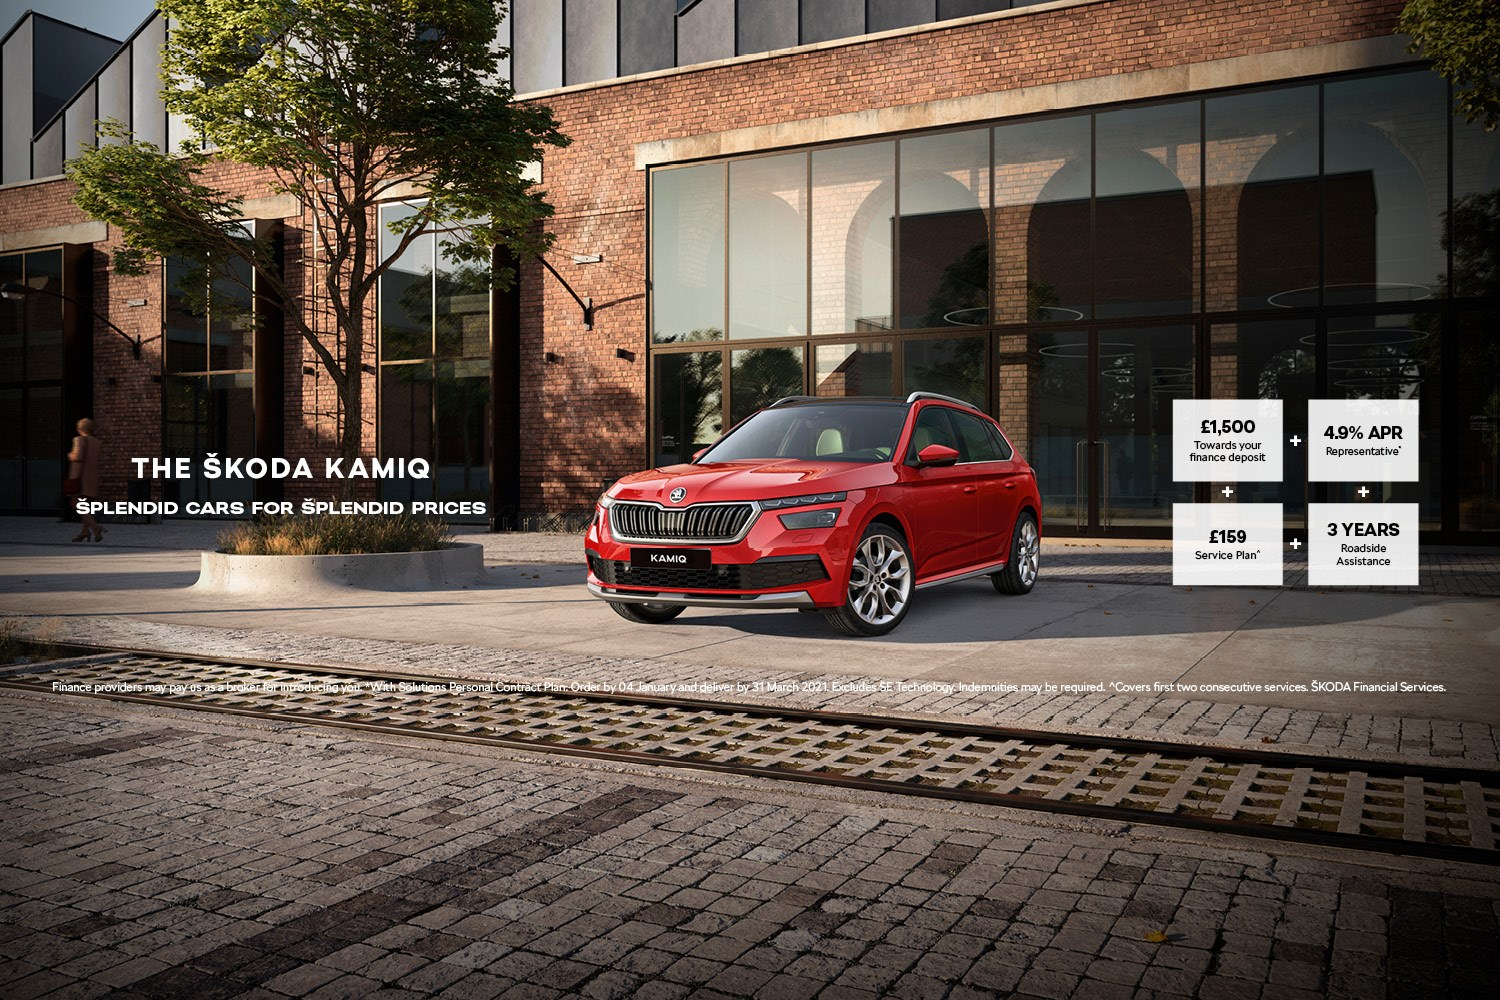 Skoda Kamiq red in front of city building with offer details